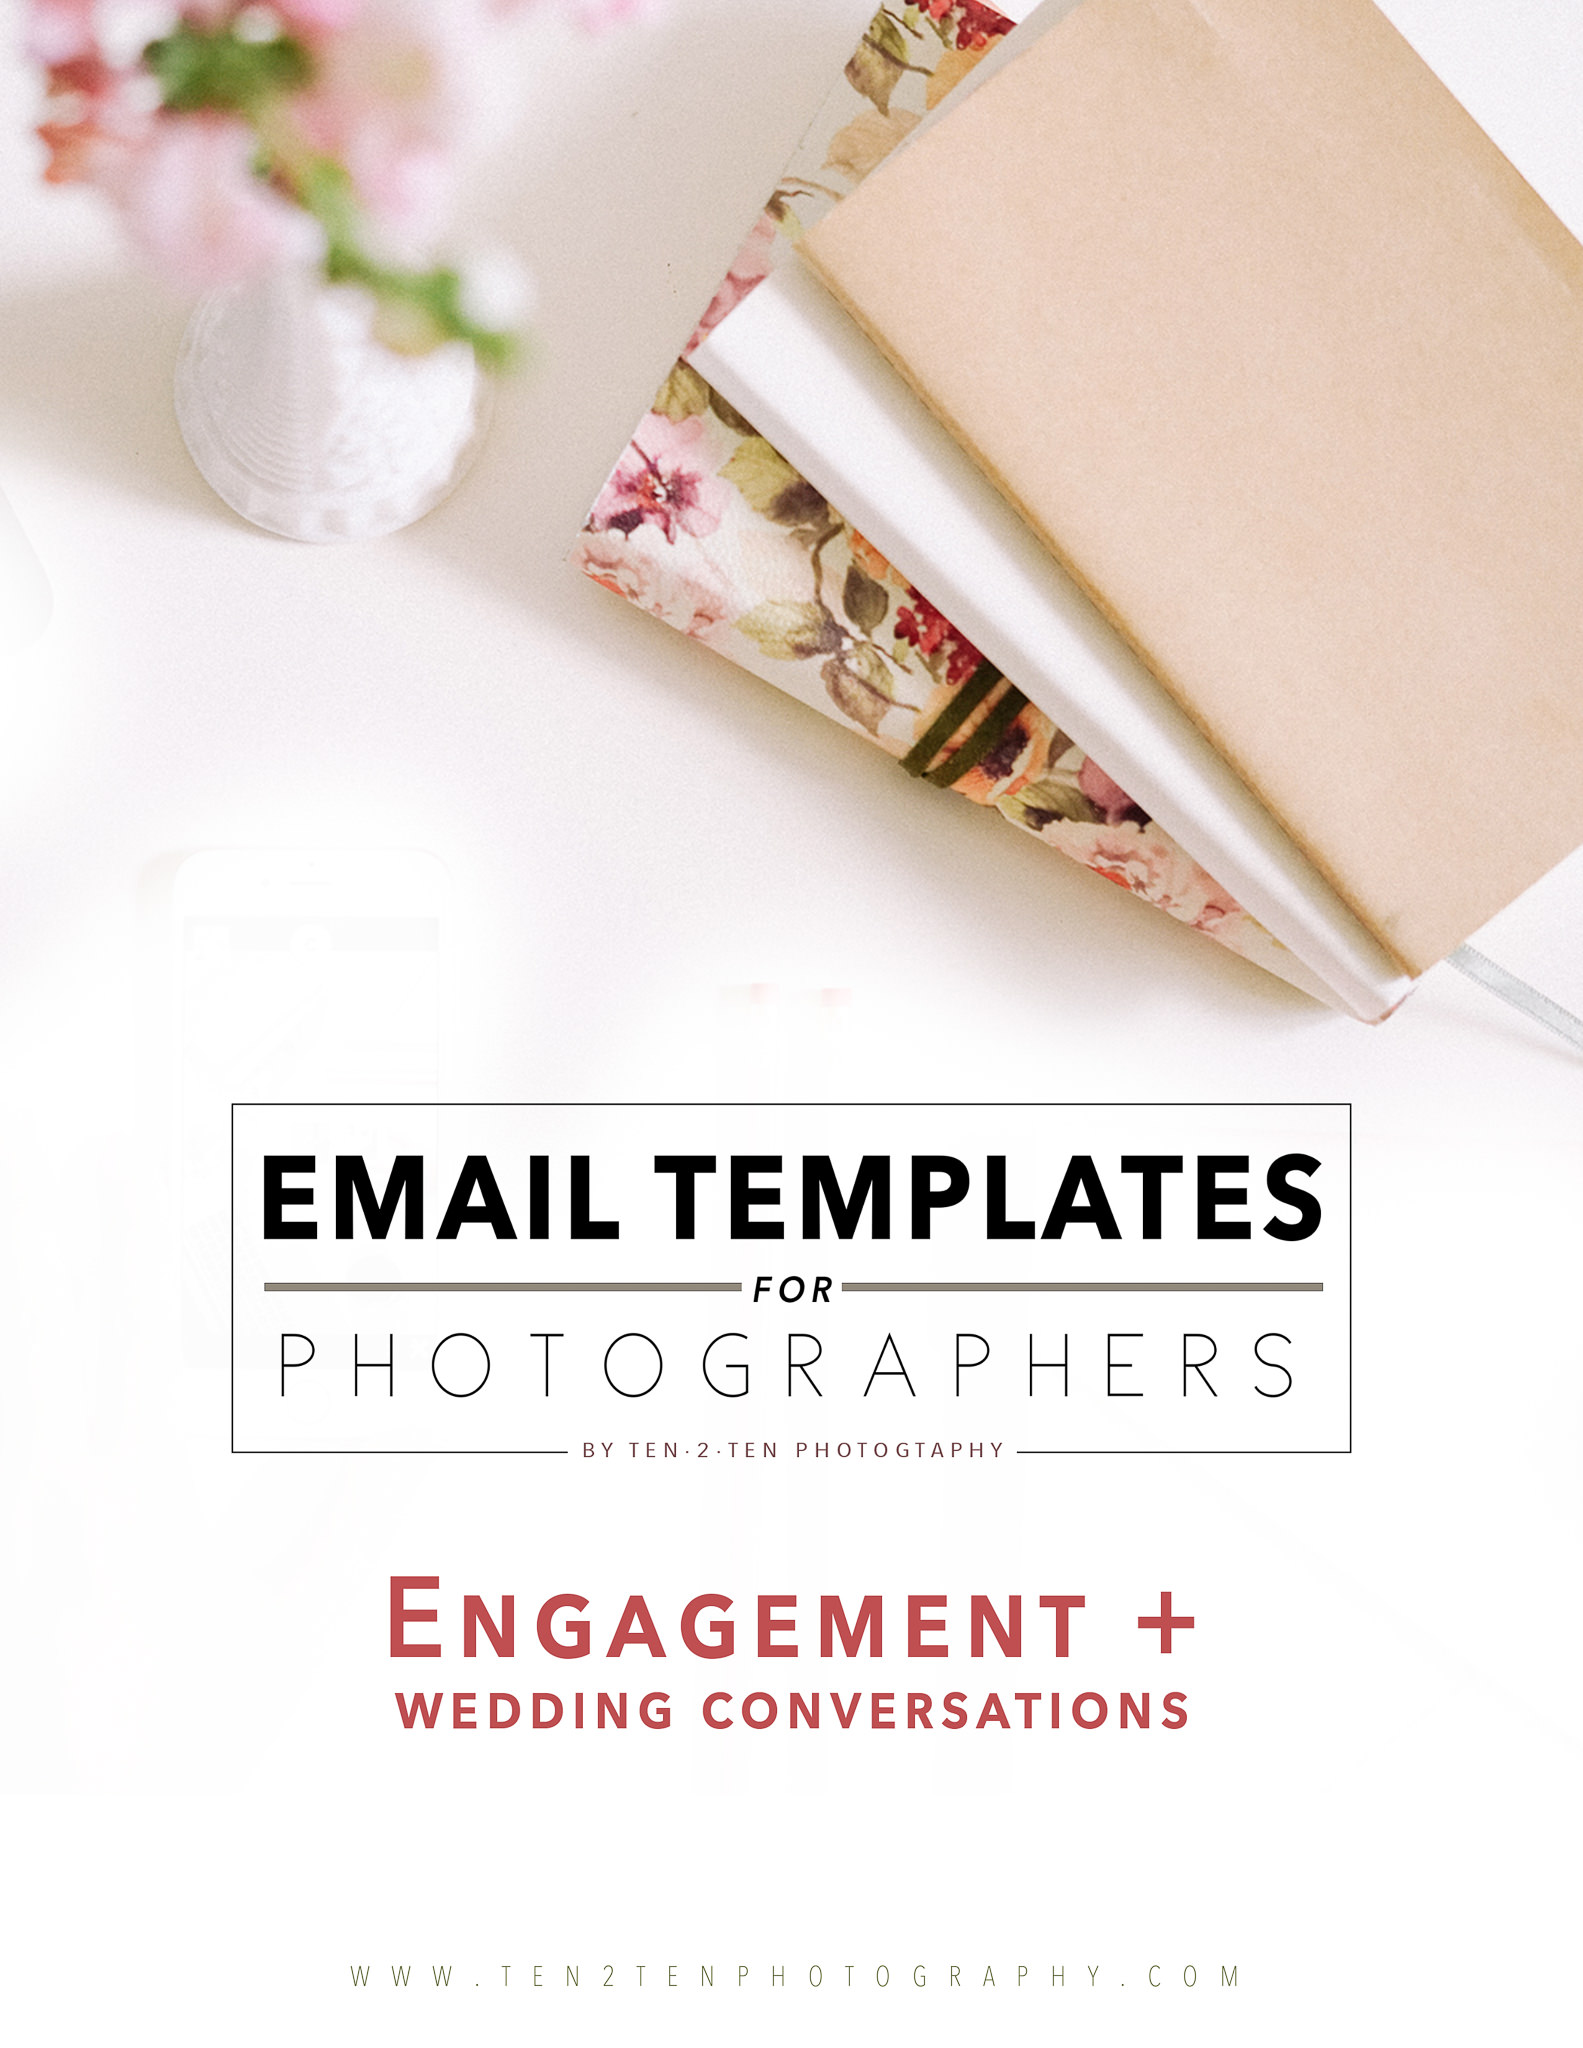 email templates for photographers 6 - Contract Contents + Guidelines